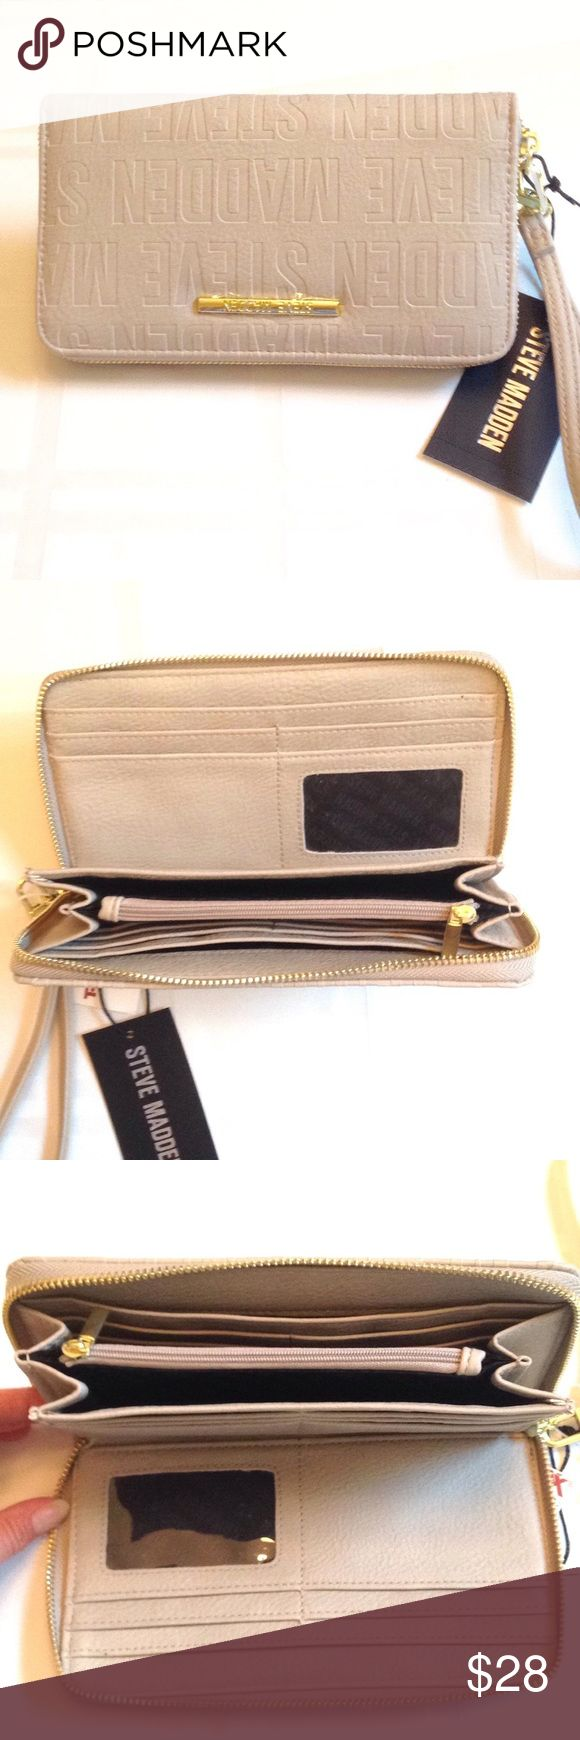 STEVE MADDEN CLUTCH/ WRISTLET STEVE MADDEN Super Stylish Clutch / Wristlet Features ID Slot 16 Credit Card Slots 2 Bill Slots And A Zipper Coin Pocket Steve Madden Bags Clutches & Wristlets